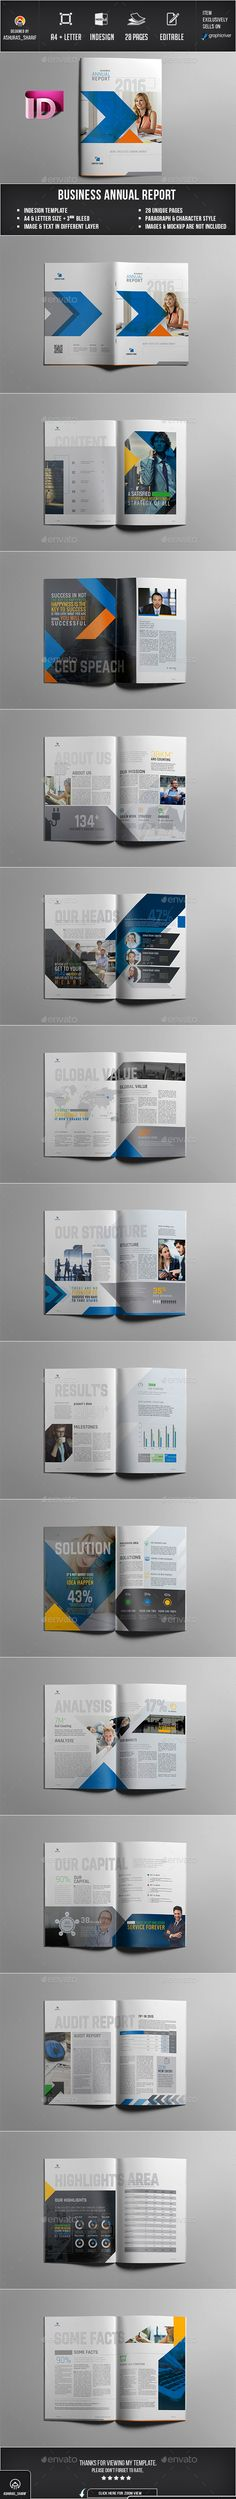 Annual Report Annual reports, Brochures and Corporate brochure - business annual report template